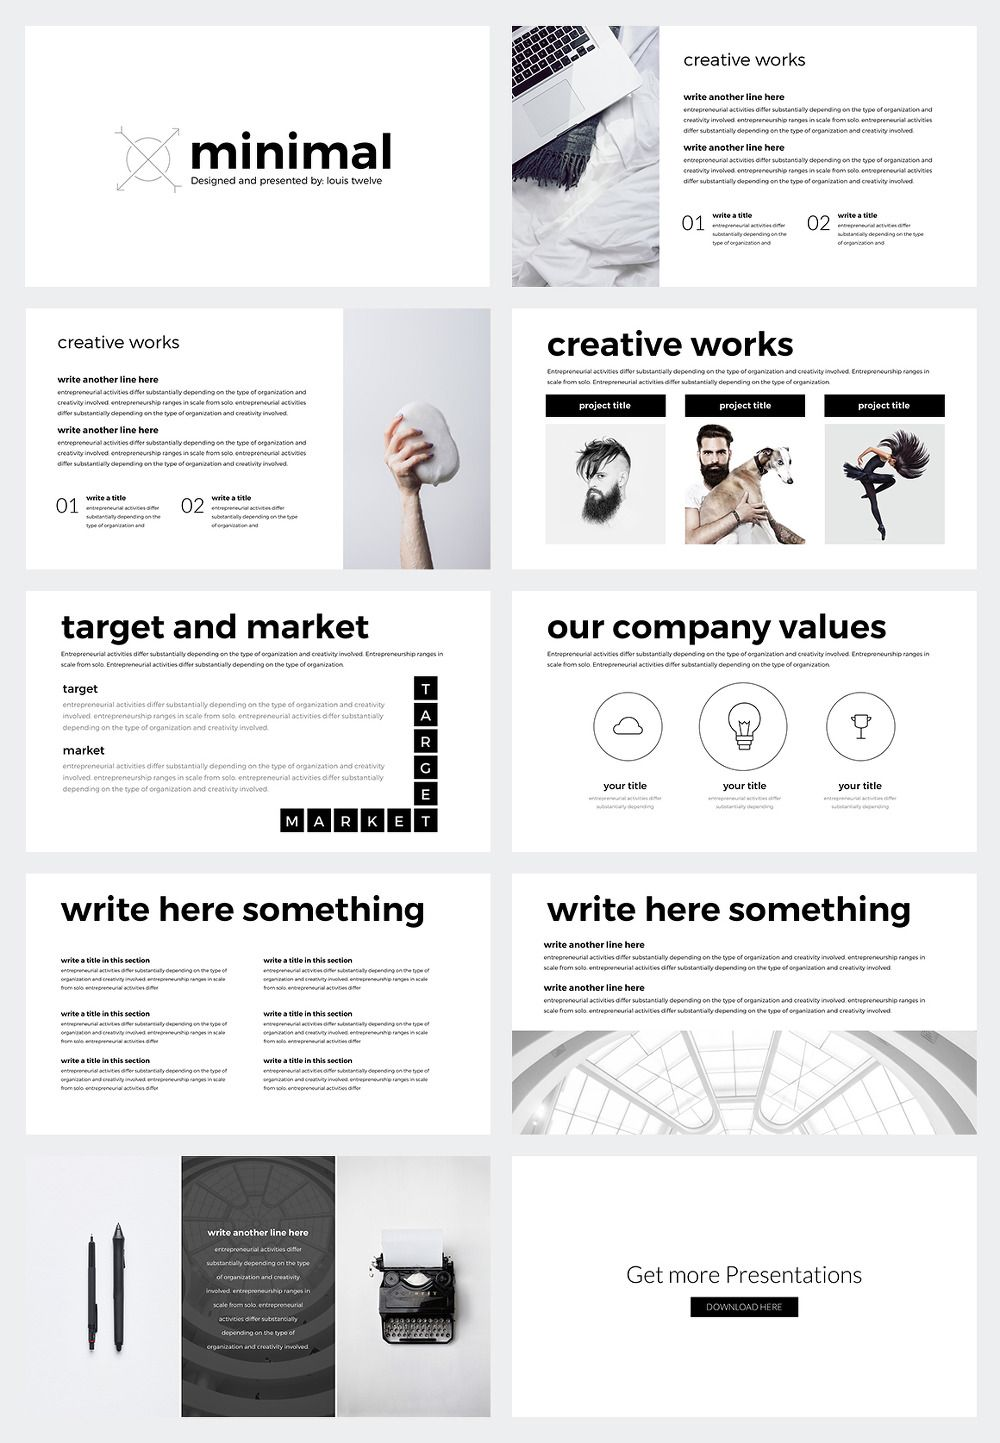 ppt free minimal powerpoint ppt free minimal powerpoint template toneelgroepblik Image collections